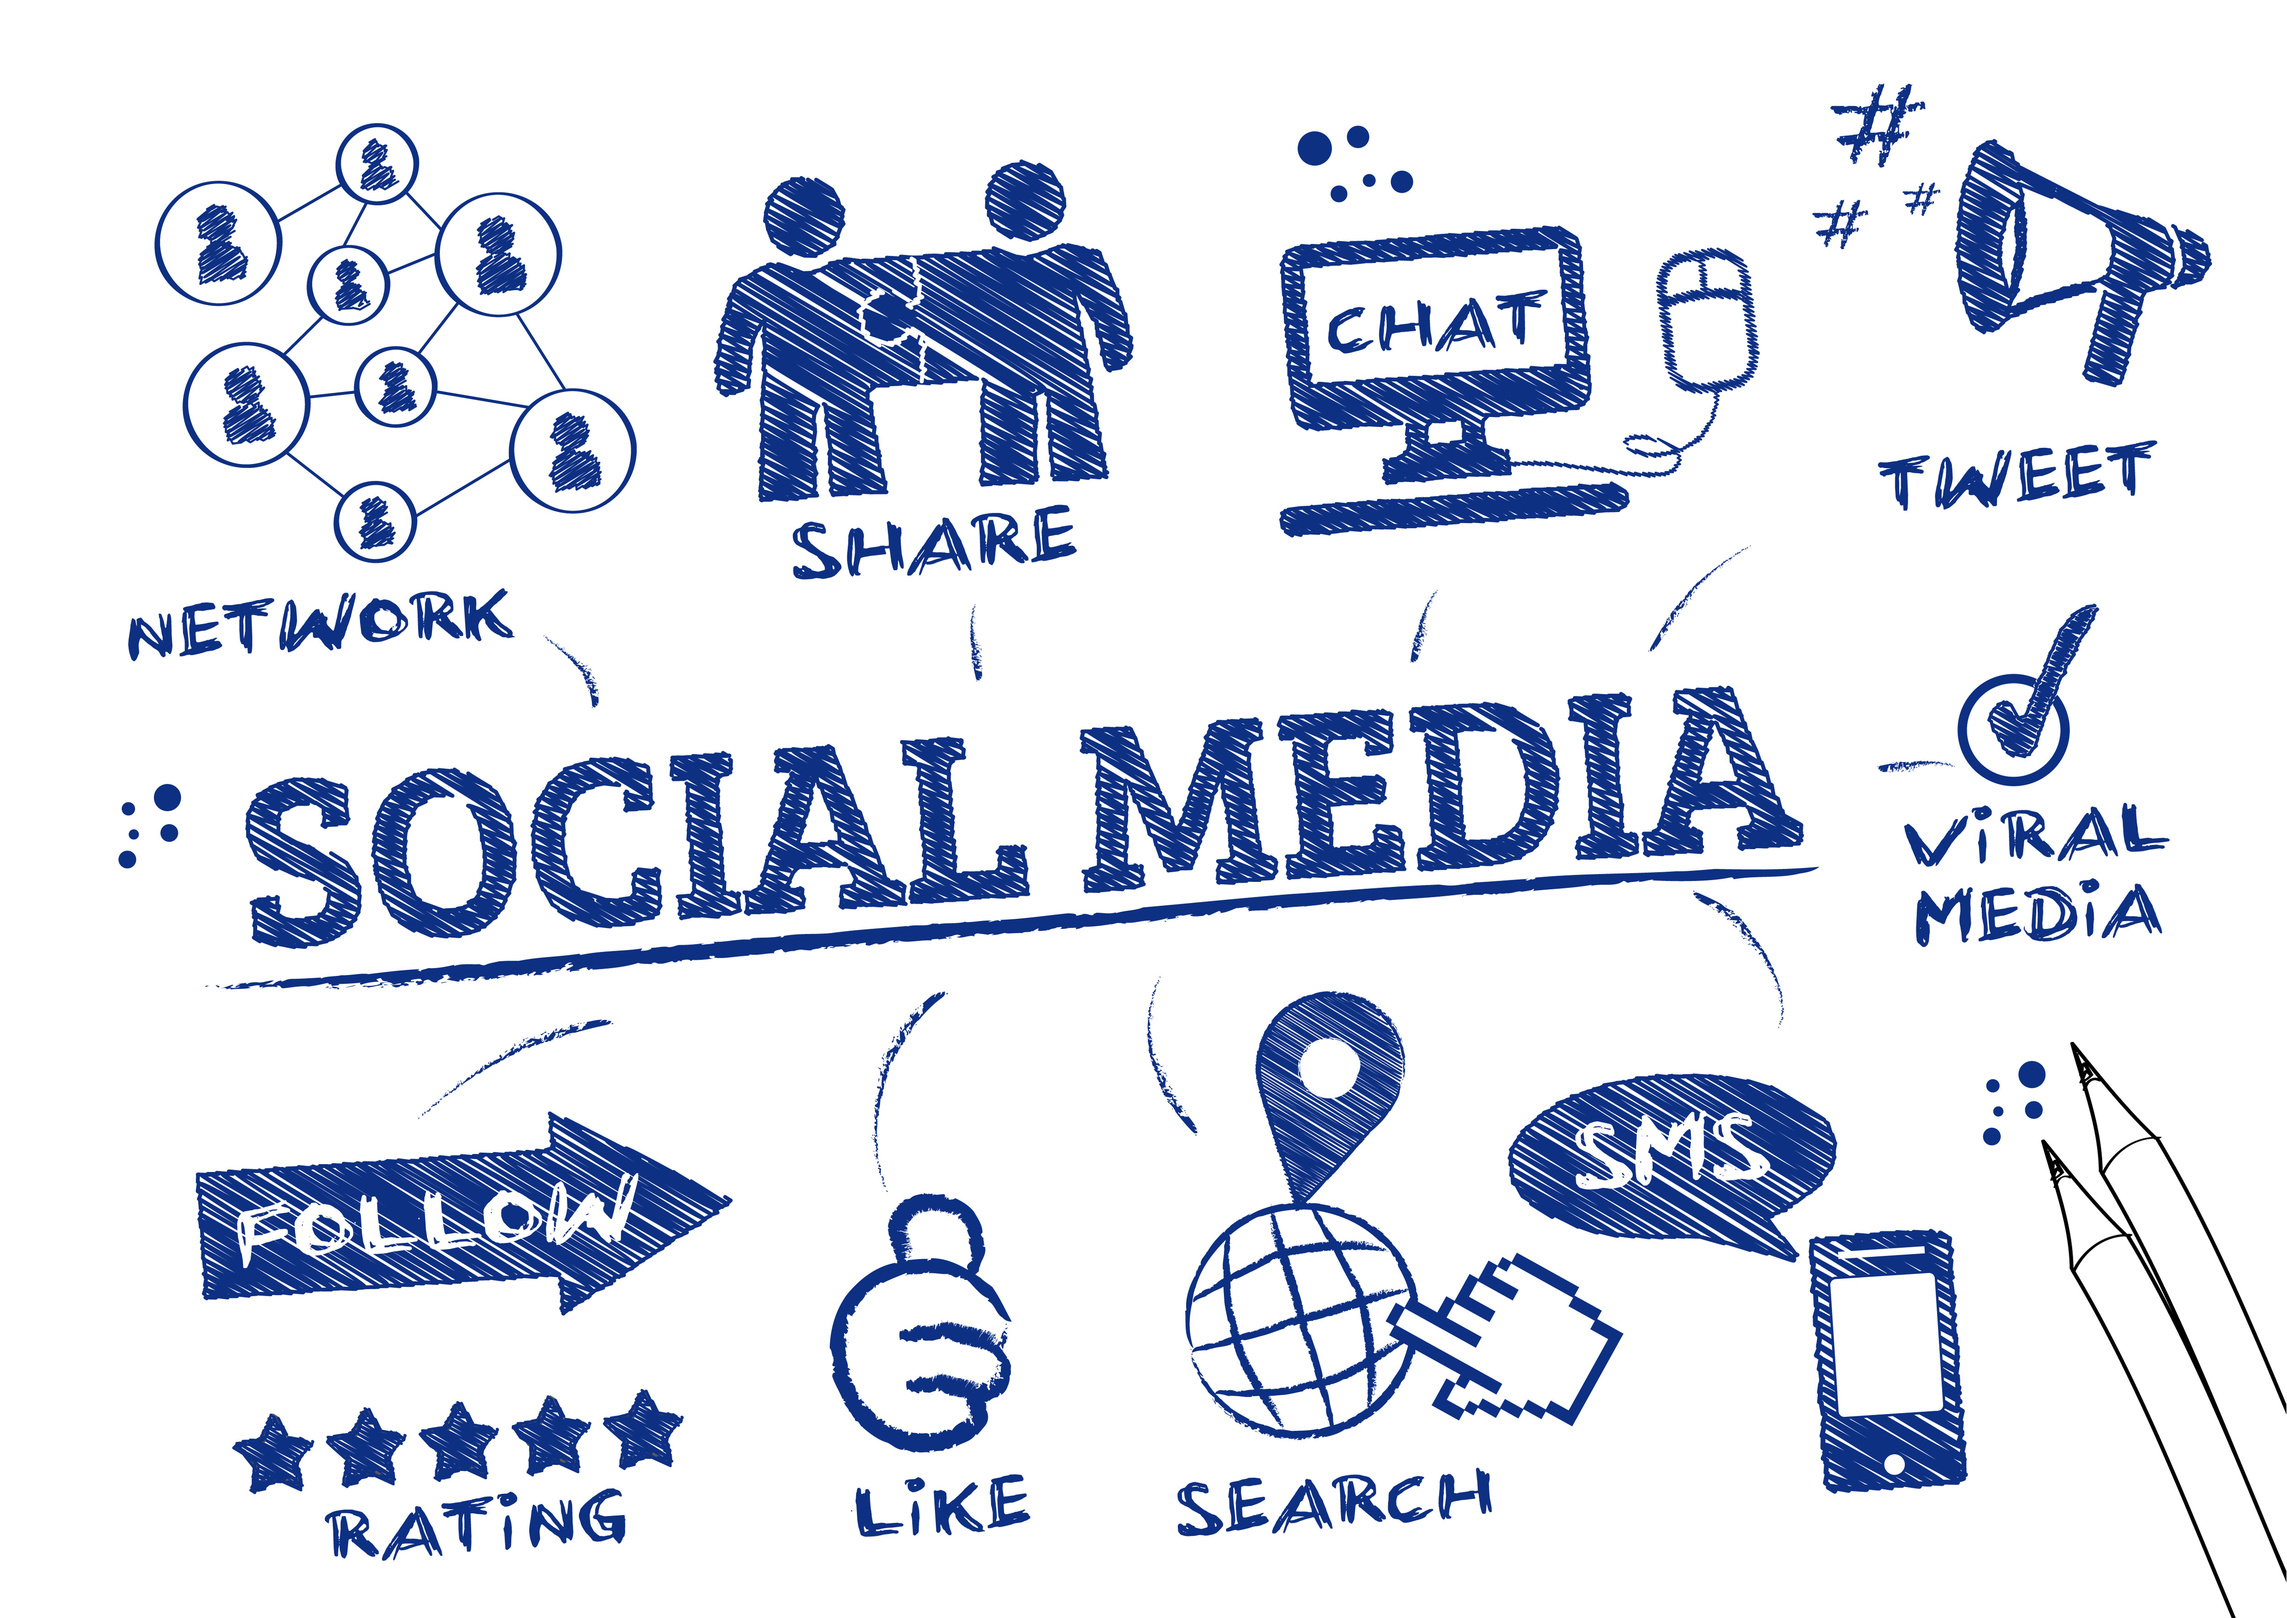 What Are The Benefits Of Social Media To Students?